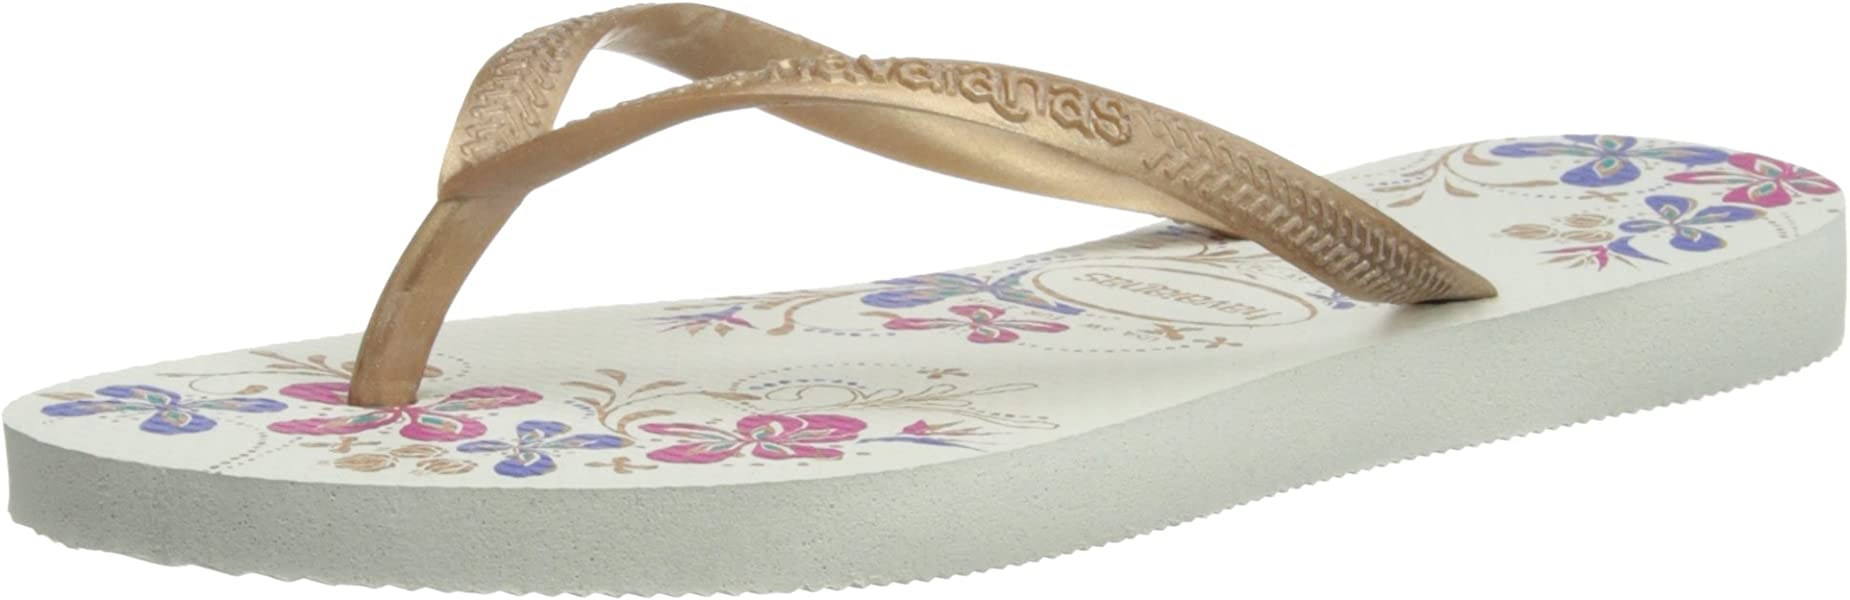 6b2c3ff8efe3f Havaianas Womens Slim Season Thong Sandals White Rose Gold 33 34   Amazon.co.uk  Shoes   Bags